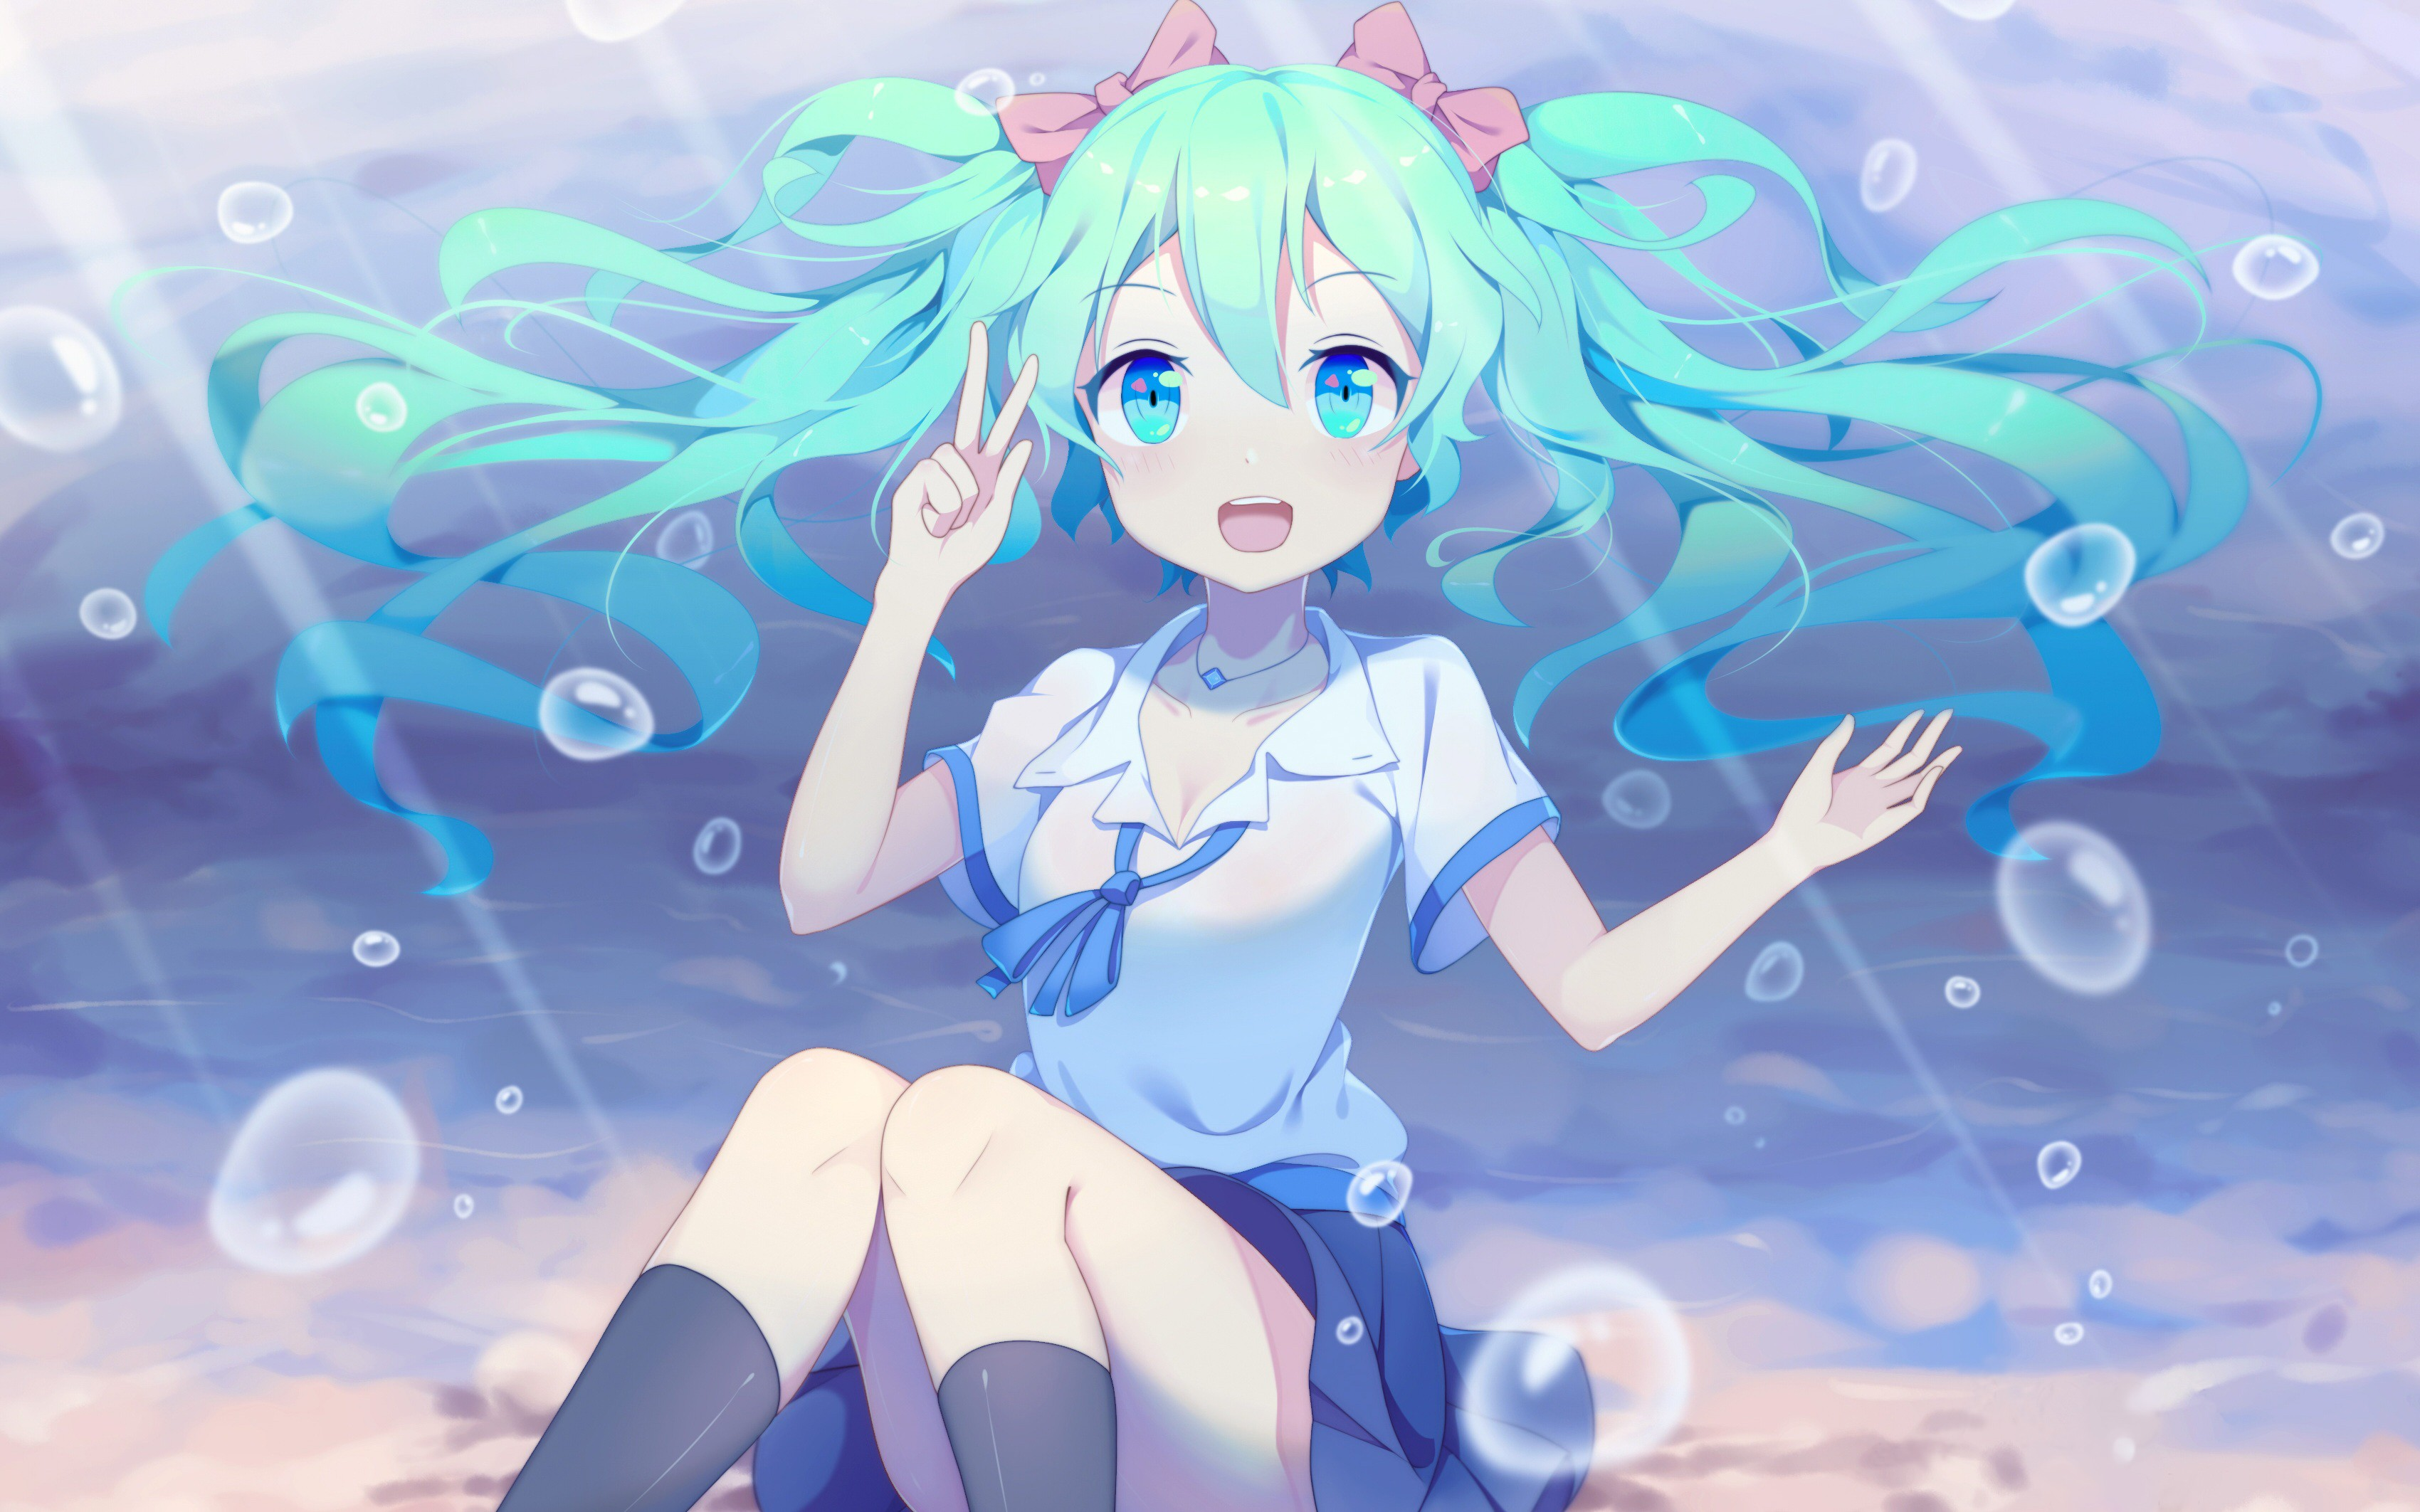 Anime 3400x2125 Hatsune Miku bubbles underwater twintails skirt ribbon knee-highs sailor uniform legs